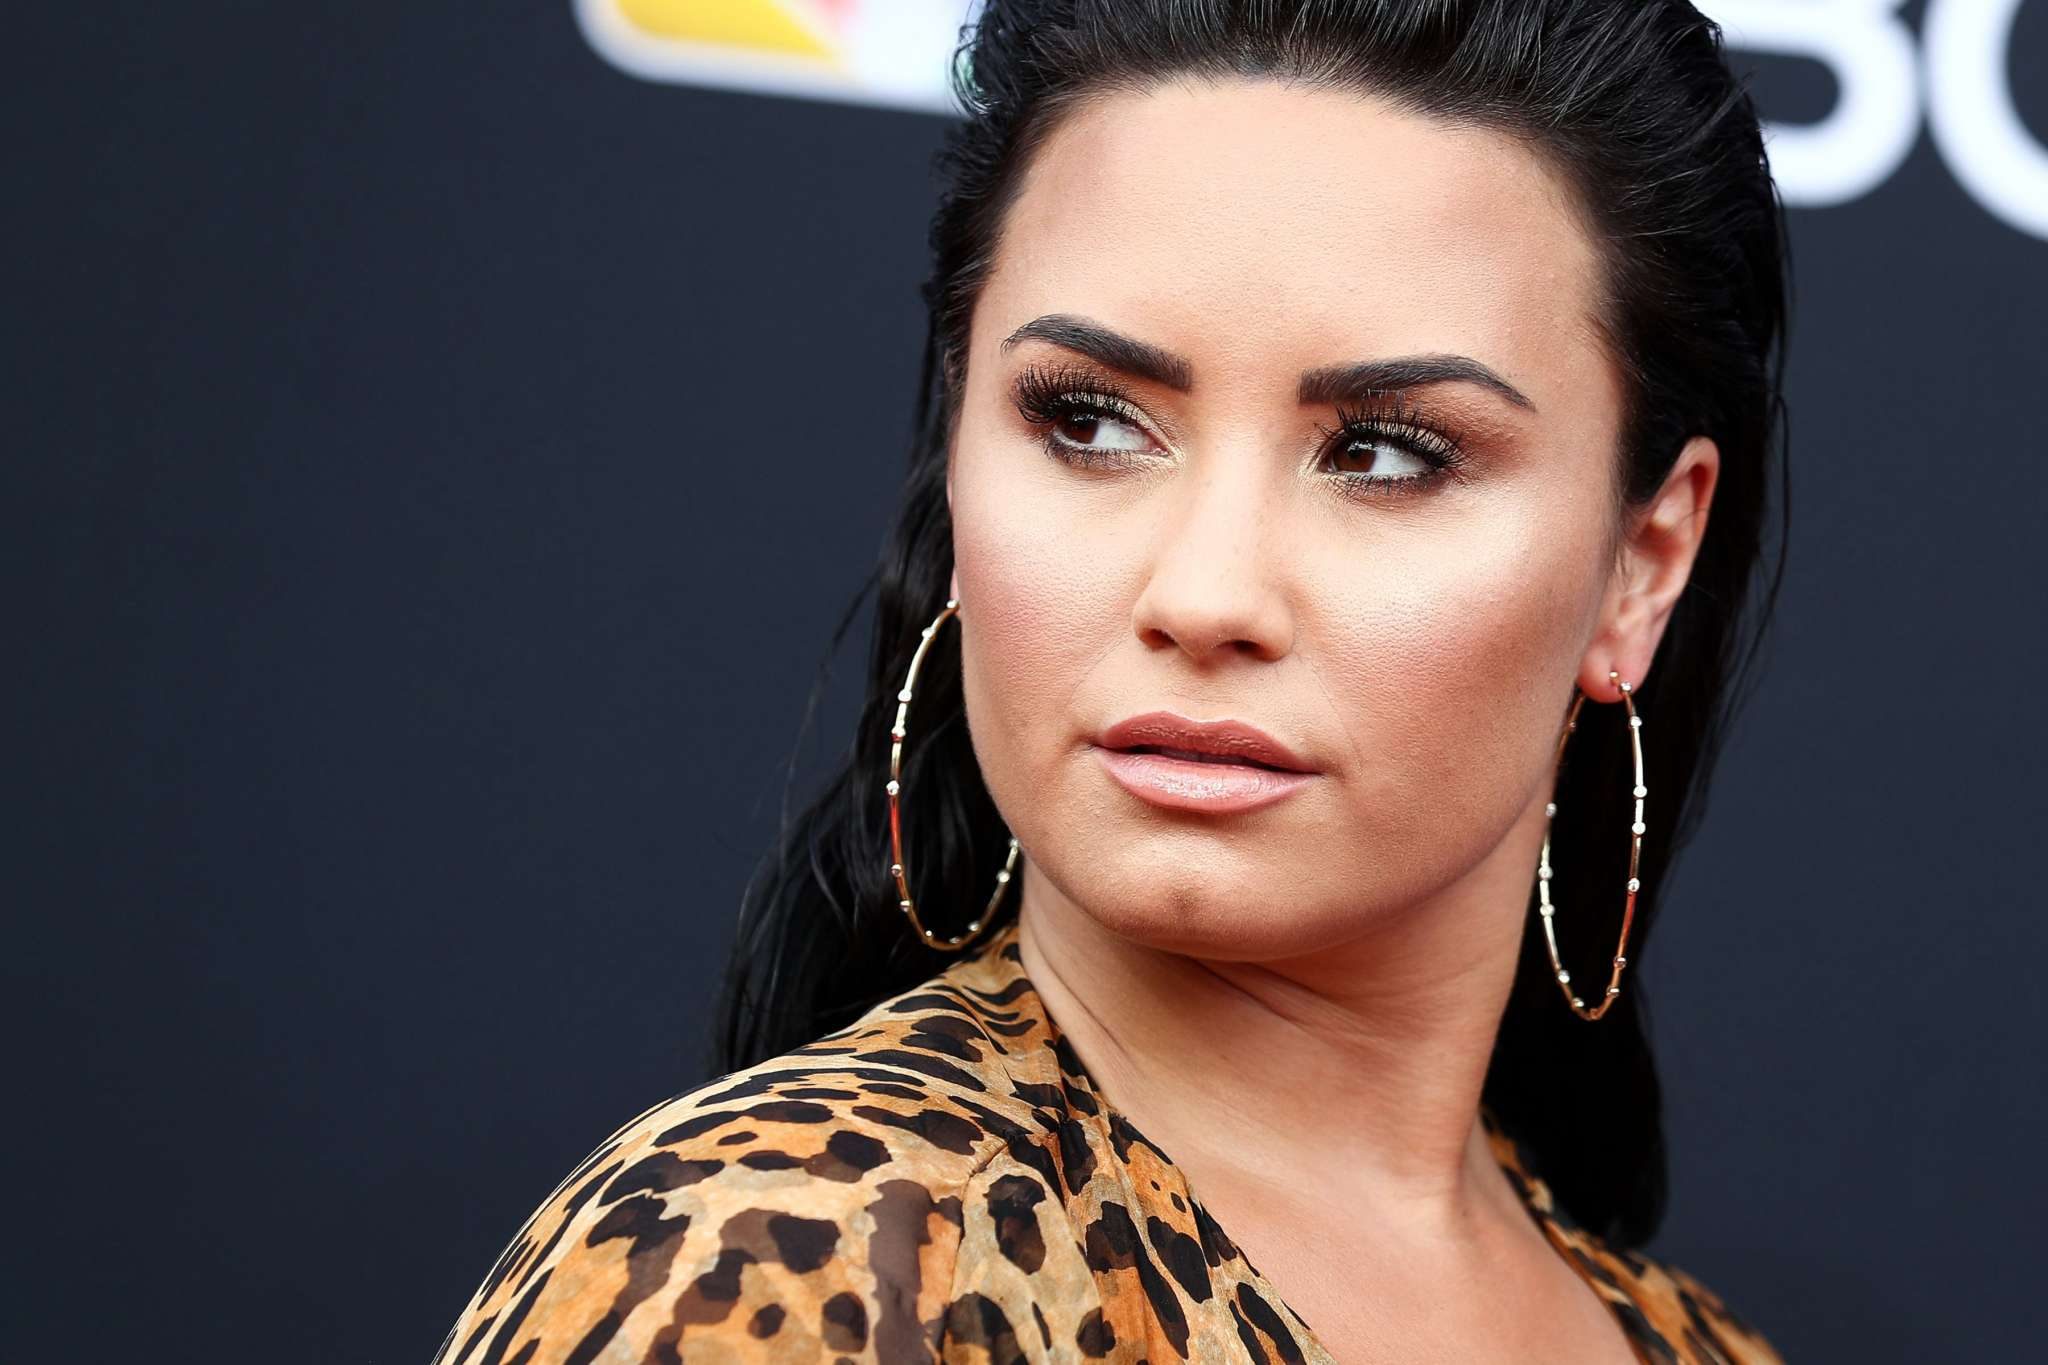 demi-lovato-shamed-for-having-a-fuller-figure-by-publication-the-star-fires-back